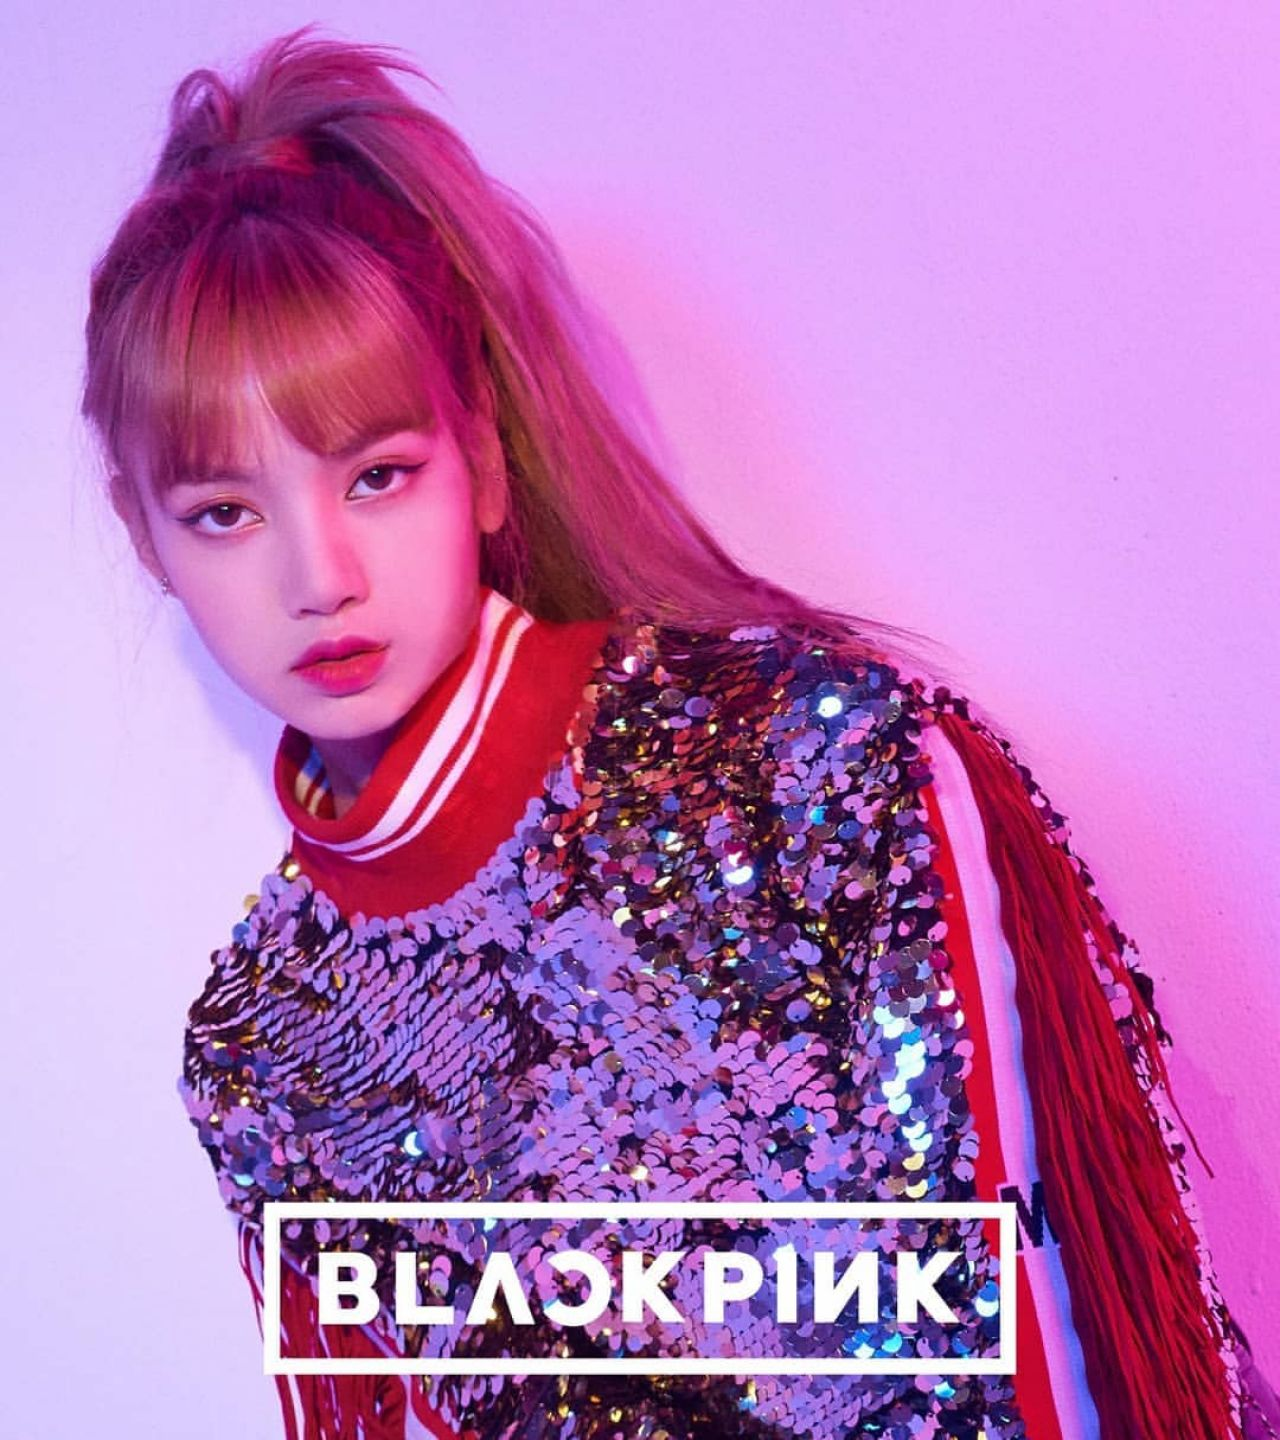 Blackpink Blackpink In Your Area 1st Japanese Album